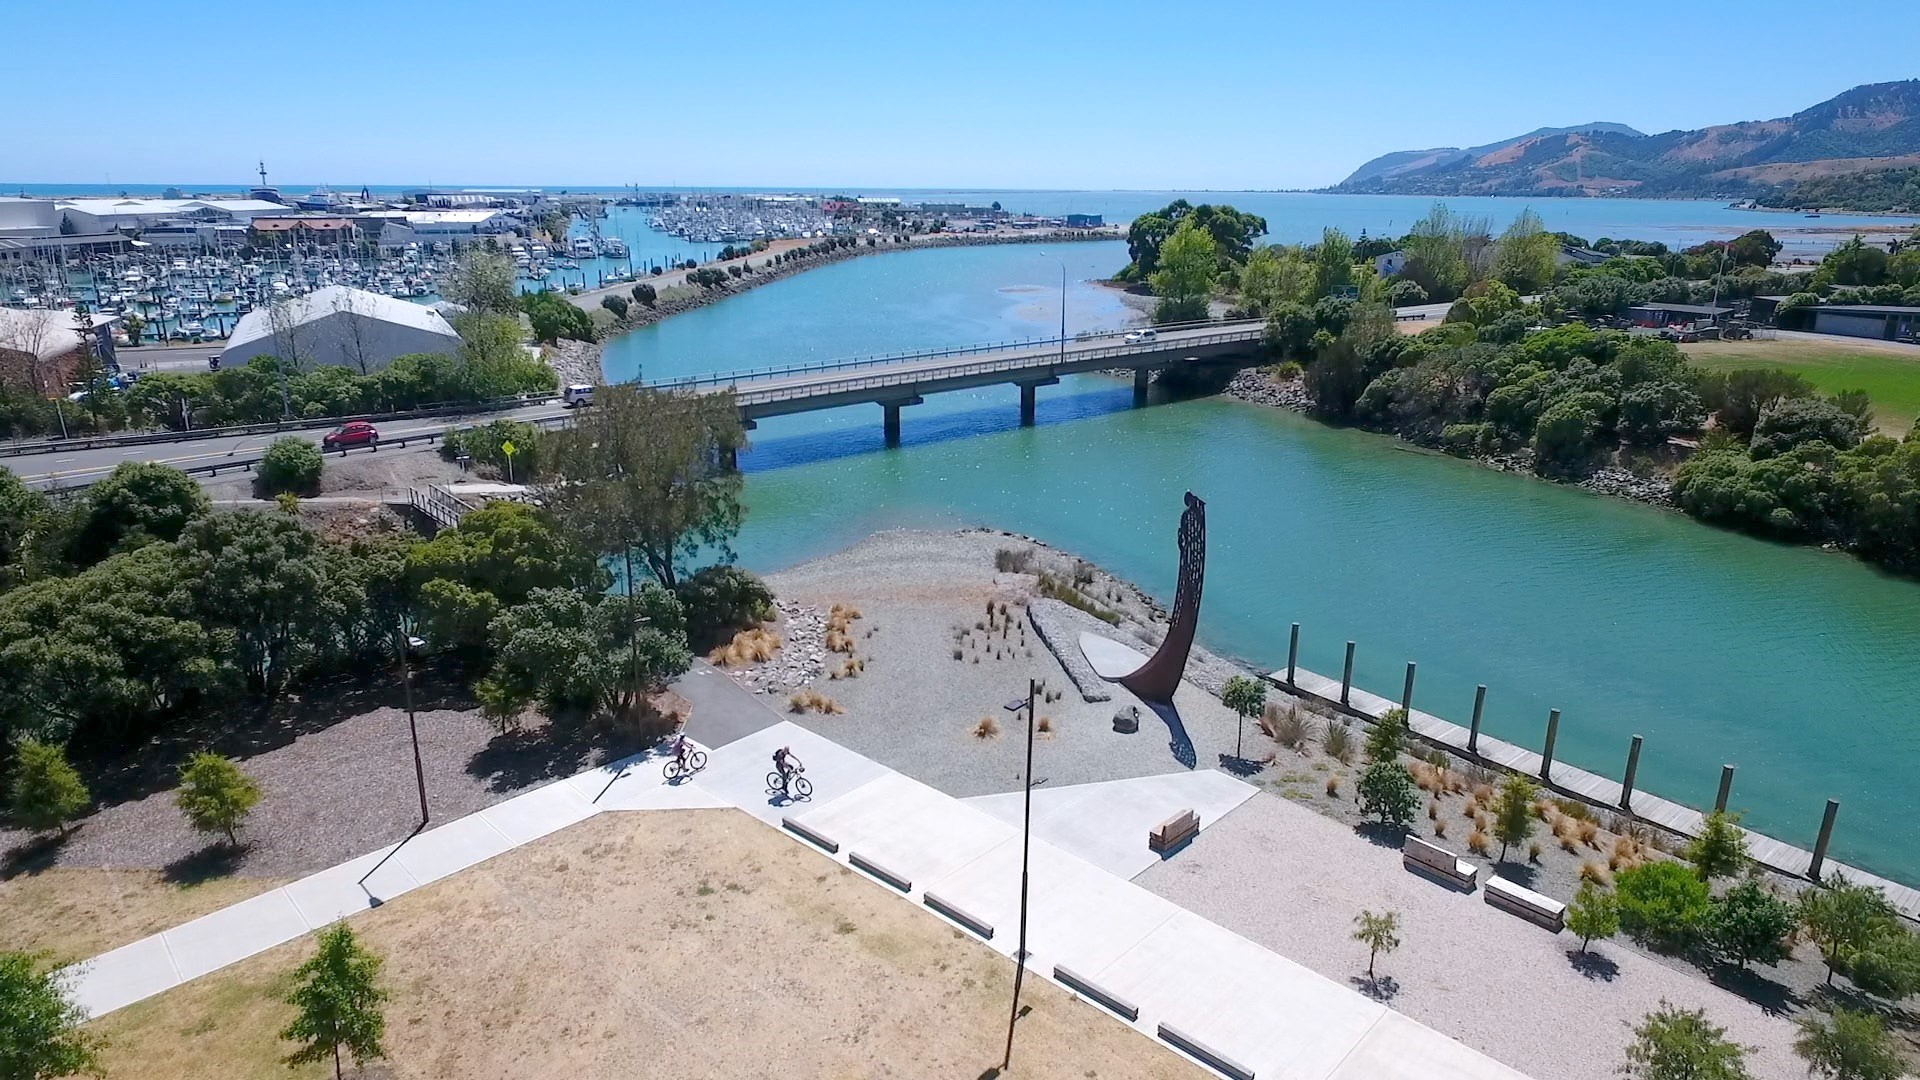 The Taurapa installed at the Waka Landing next to Rutherford Park.